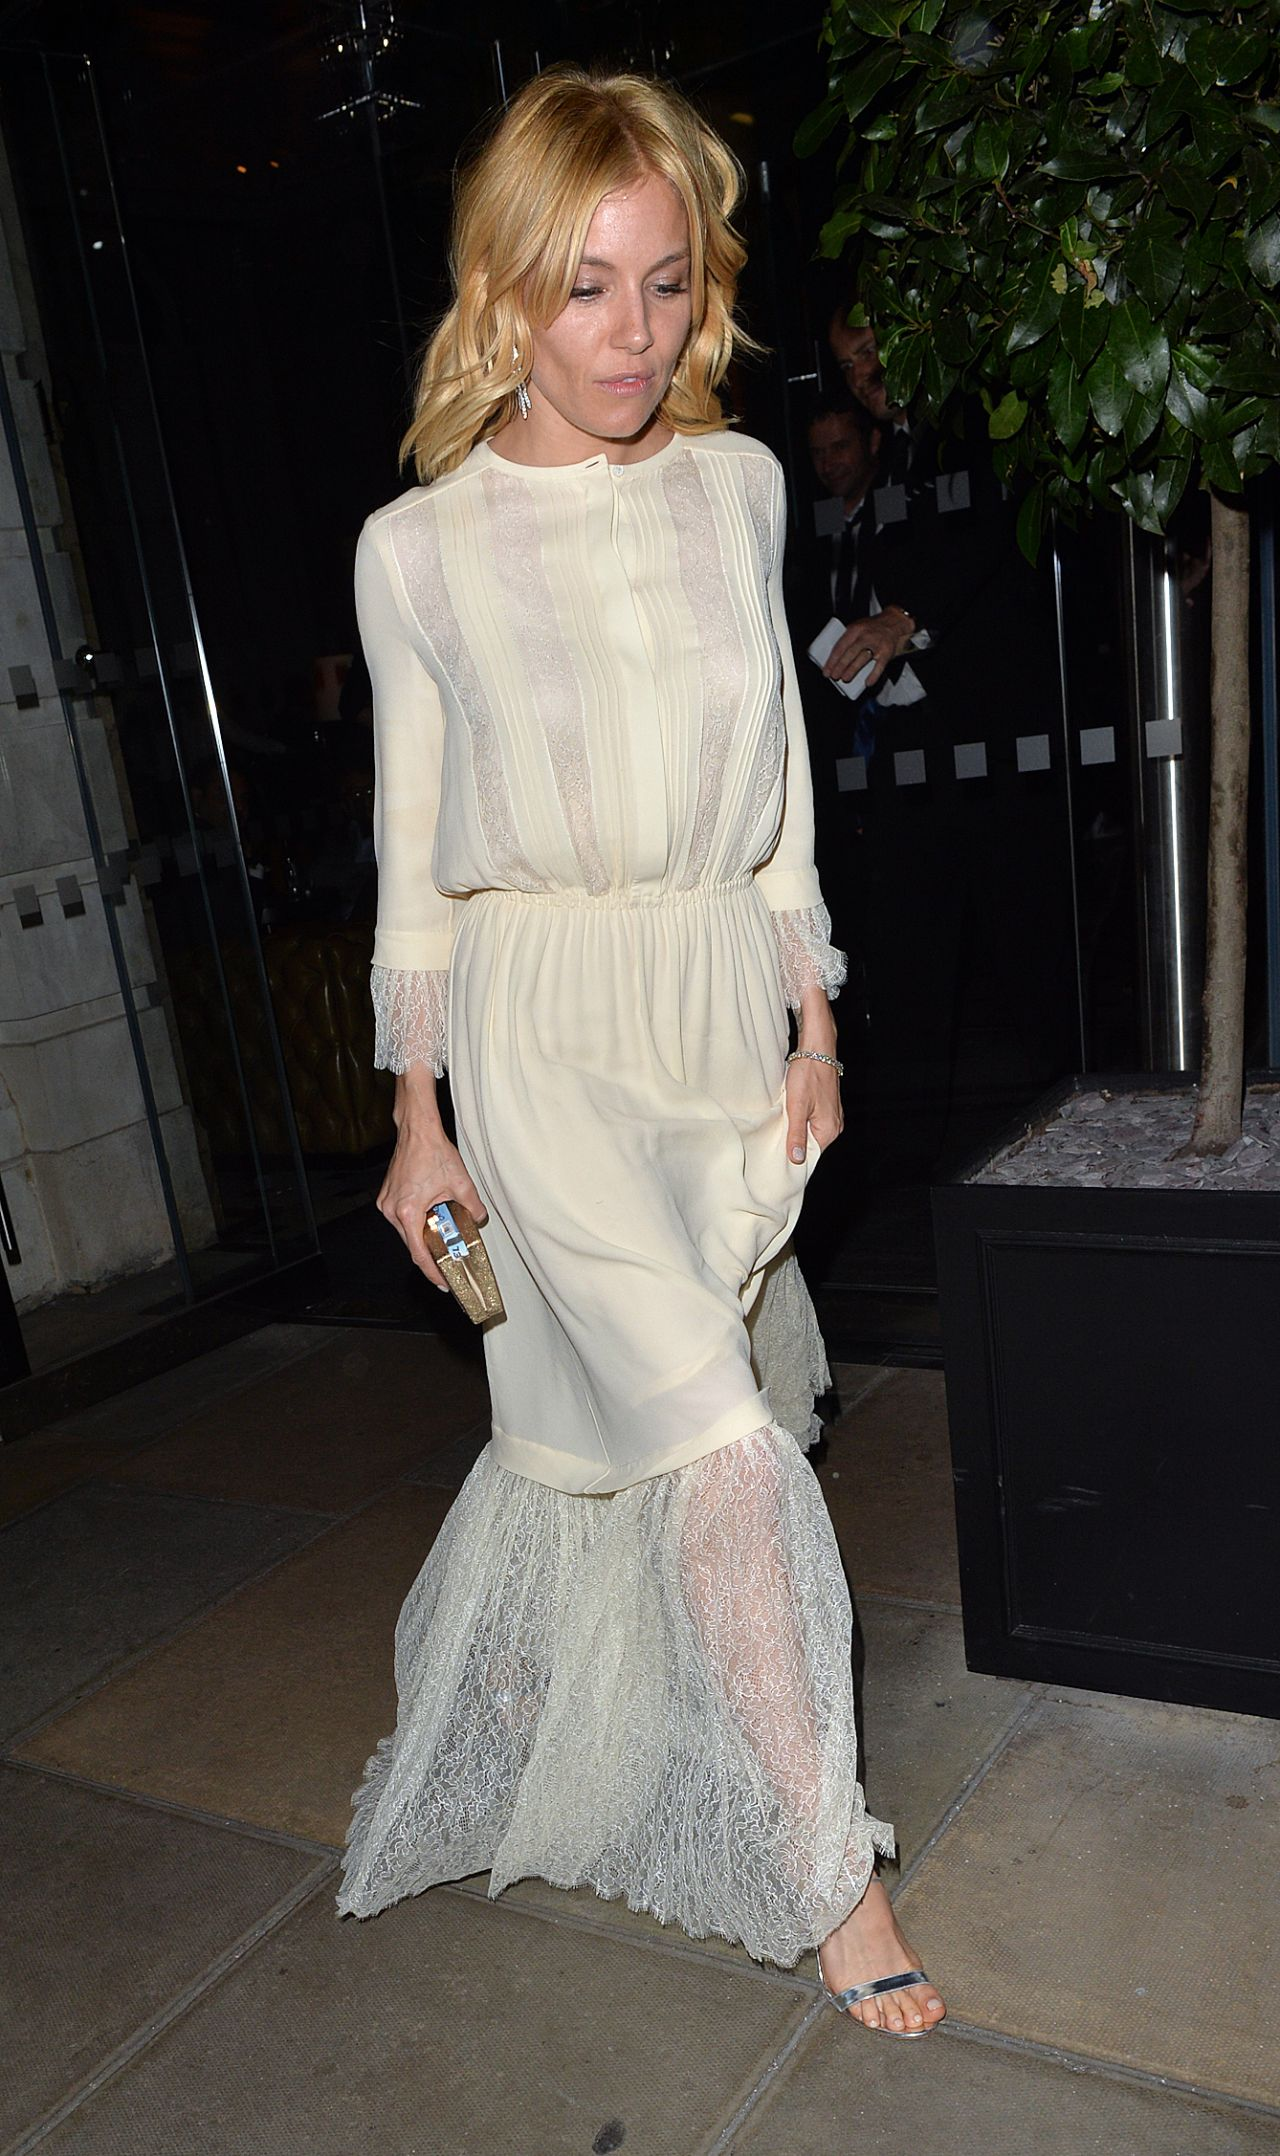 sienna-miller-out-in-london-october-2015_2-1